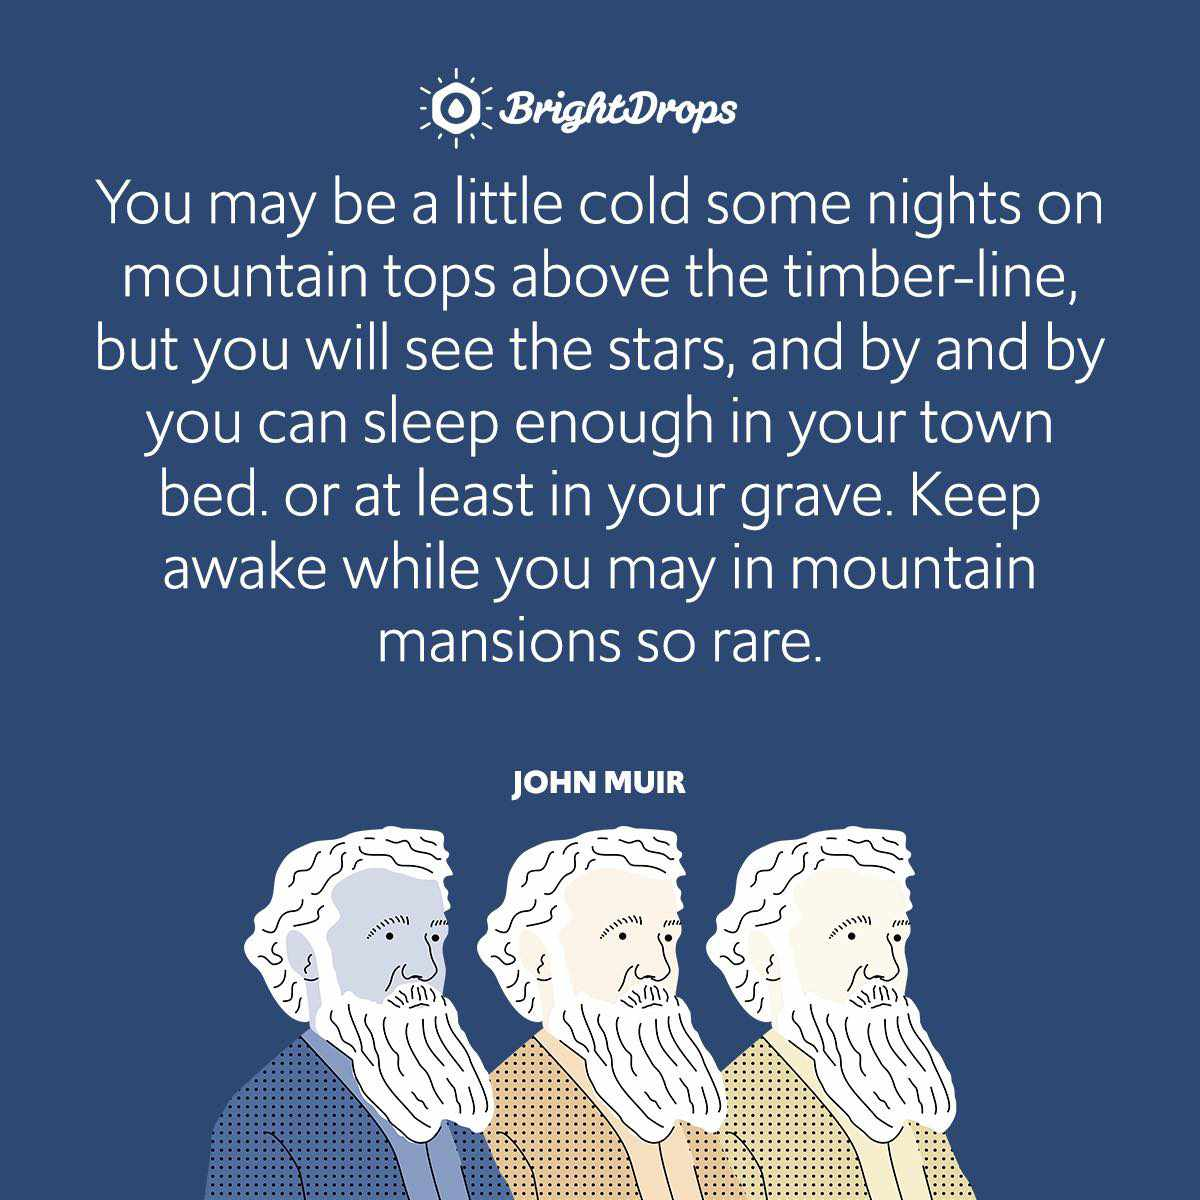 You may be a little cold some nights on mountain tops above the timber-line, but you will see the stars, and by and by you can sleep enough in your town bed. or at least in your grave. Keep awake while you may in mountain mansions so rare.